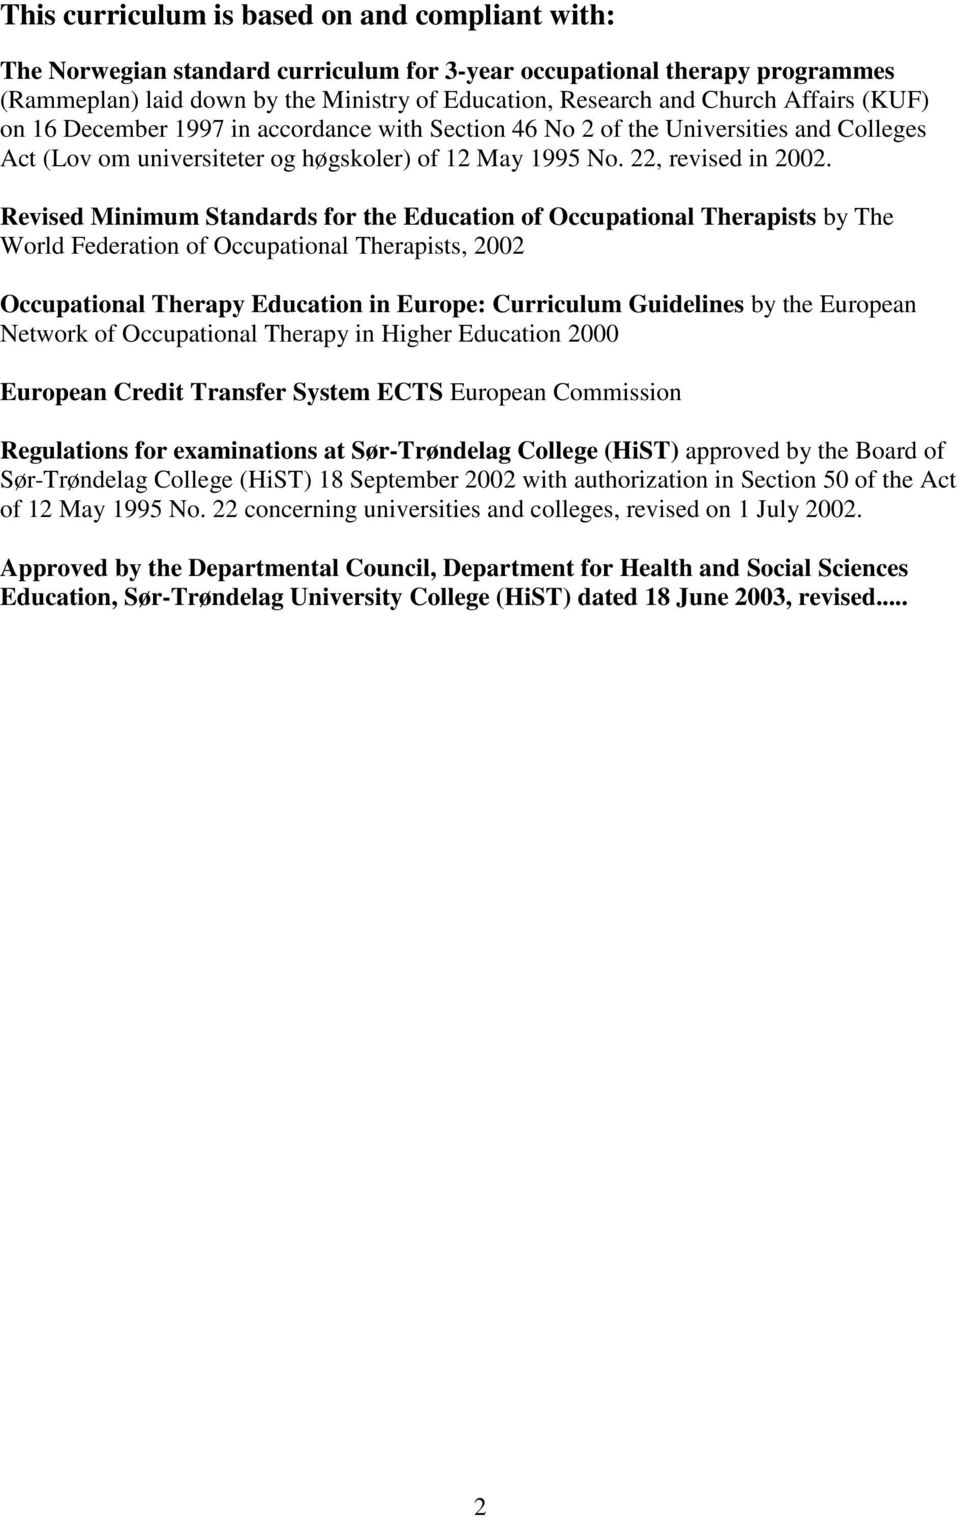 Revised Minimum Standards for the Education of Occupational Therapists by The World Federation of Occupational Therapists, 2002 Occupational Therapy Education in Europe: Curriculum Guidelines by the